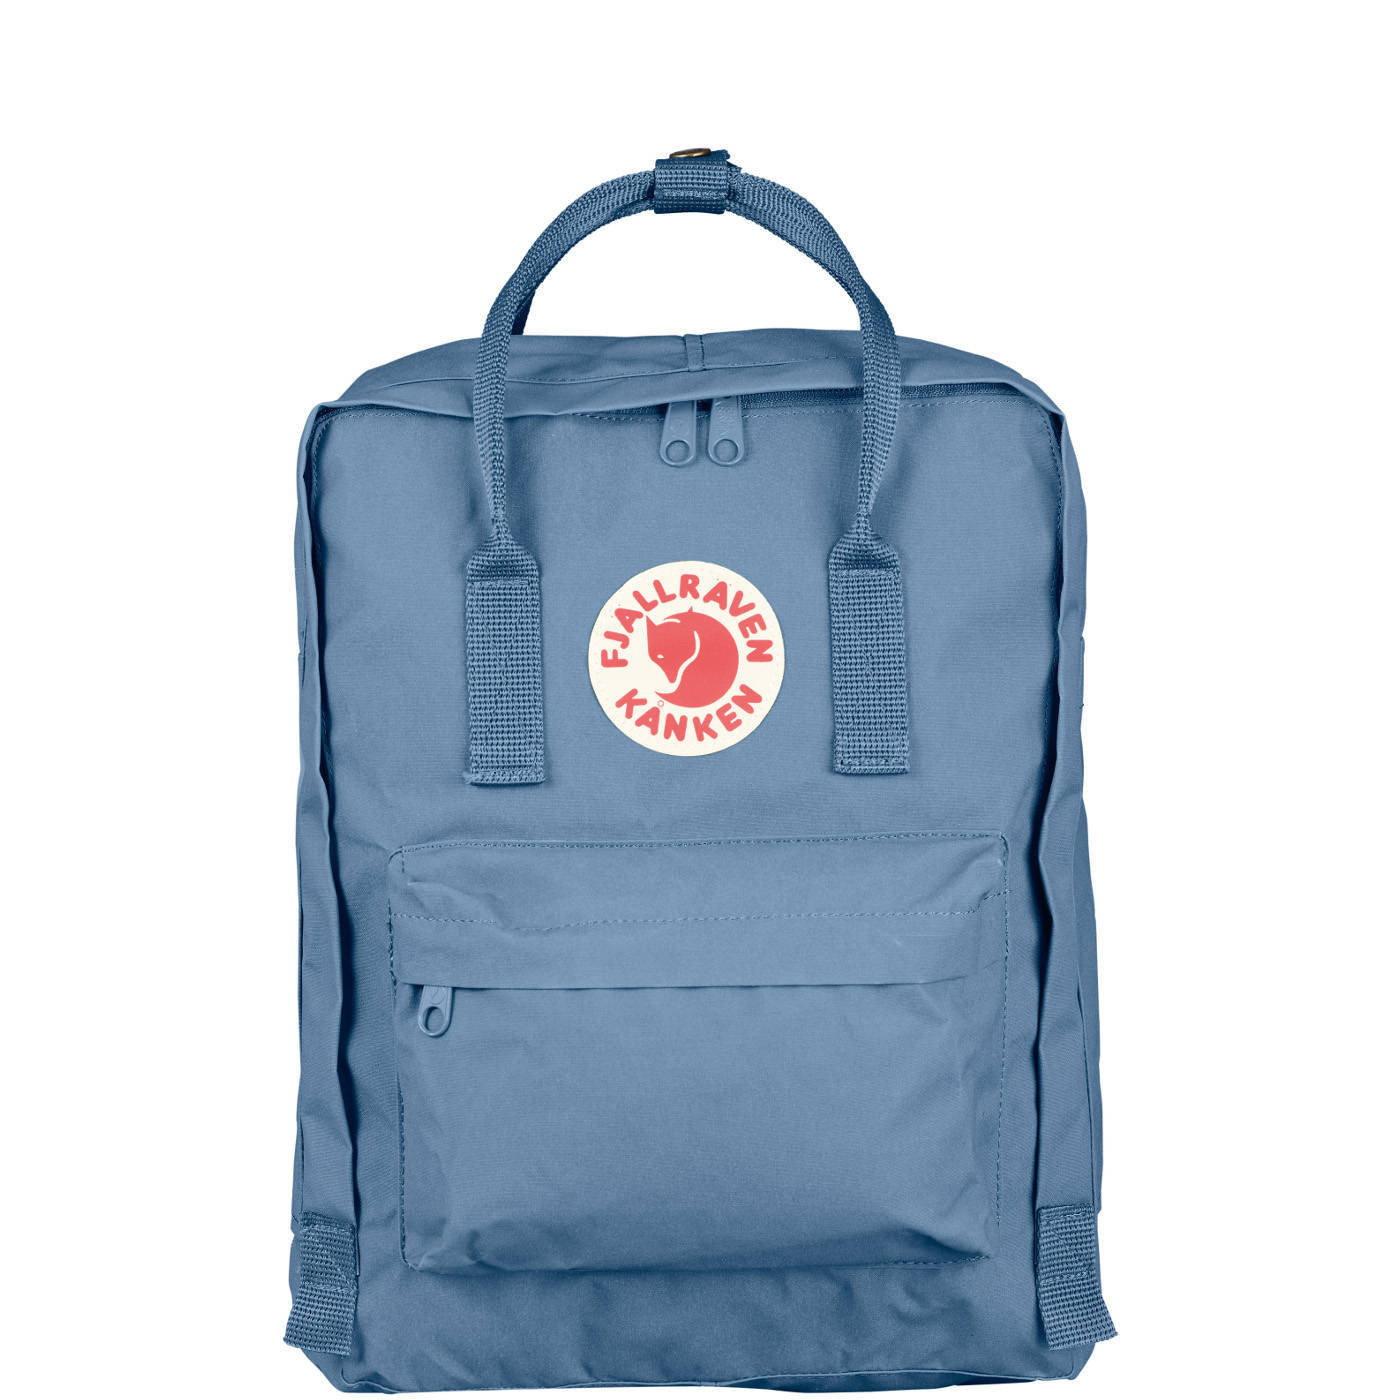 popular brand authentic super quality Fjällräven Kånken rucksack F23510-519